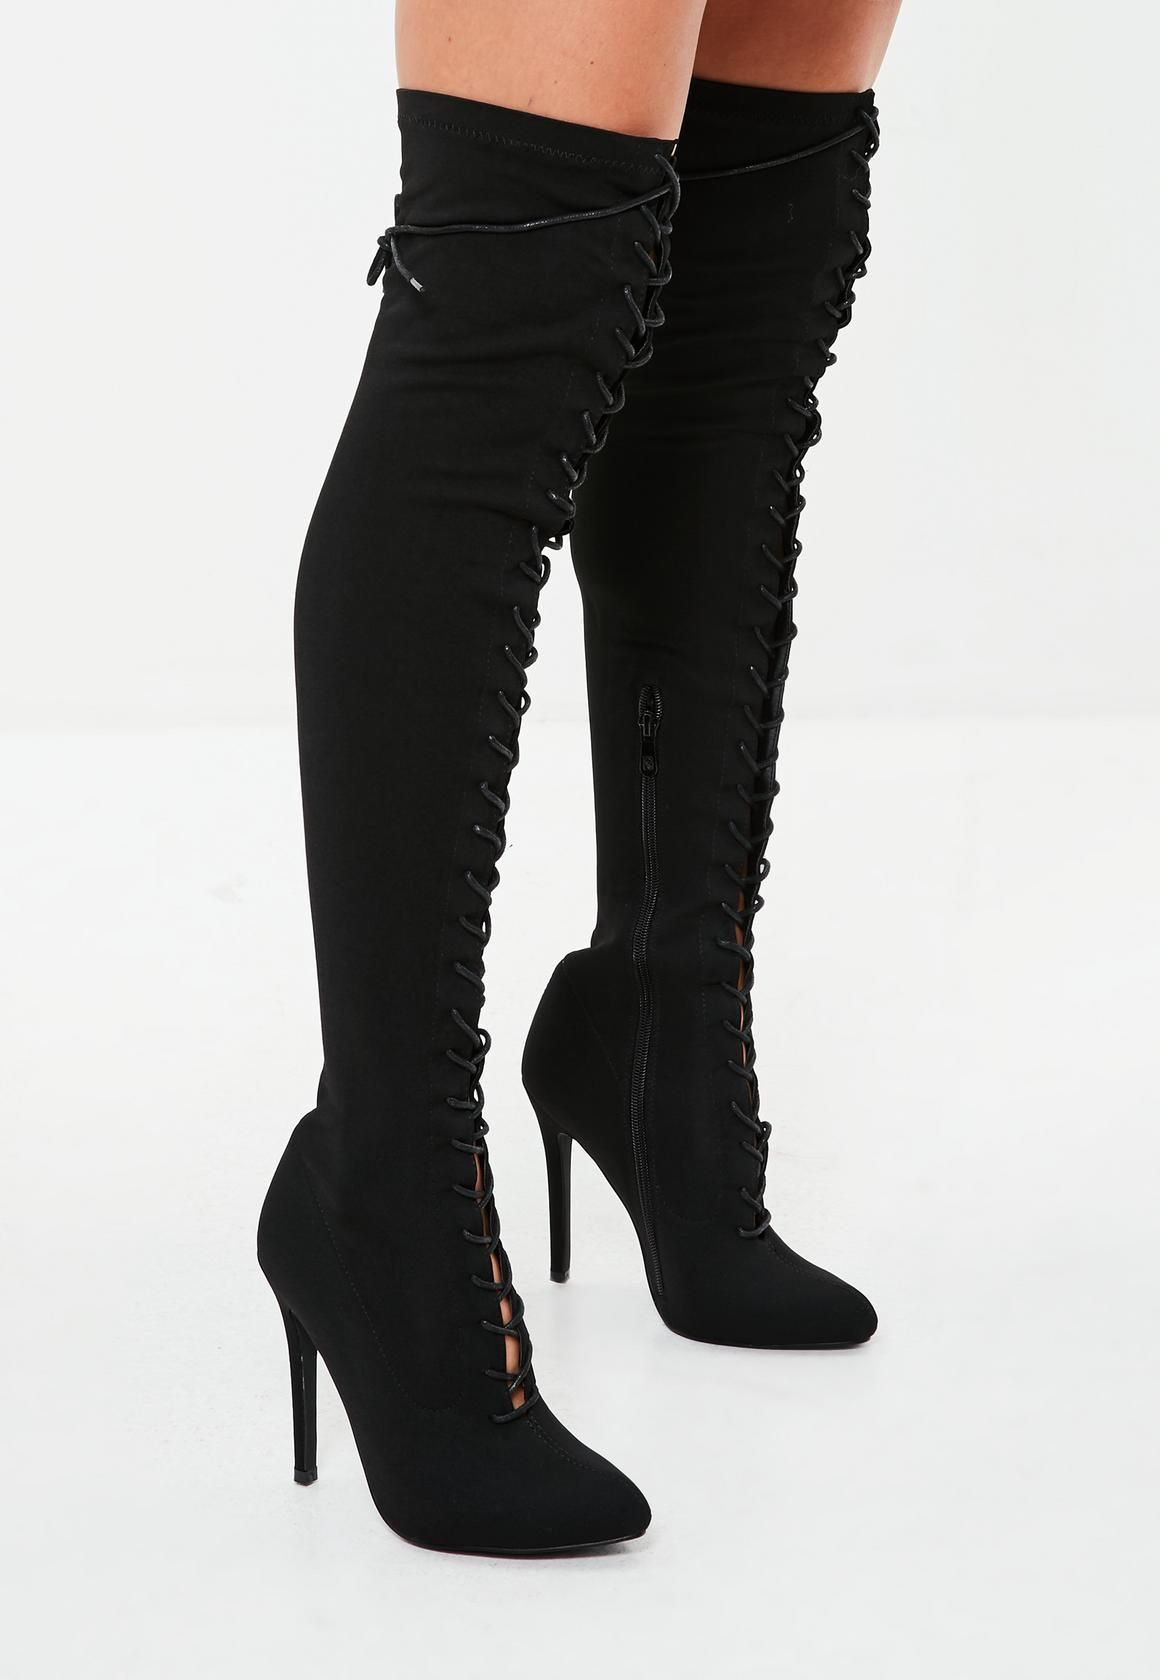 600a186ec480 Missguided - Black Lace Up Over The Knee Boots | shoes goals in 2019 ...